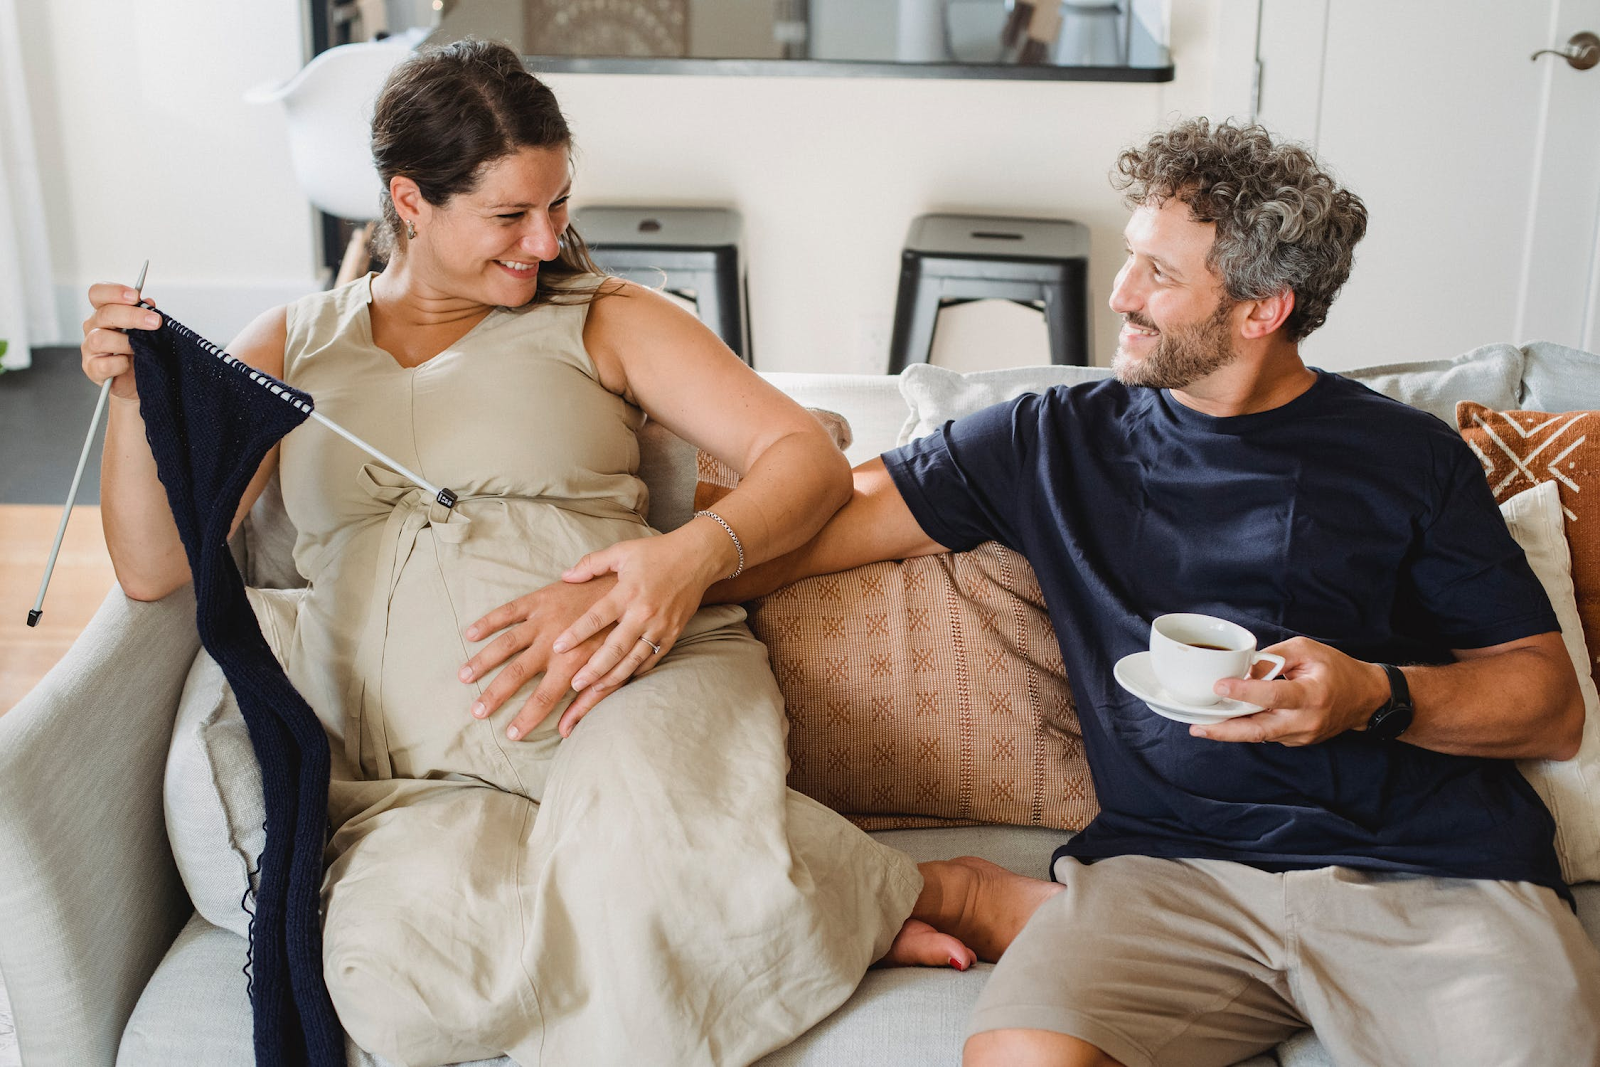 An image of a couple sitting on the couch. The woman on the left is pregnant and smiling, and holding one of the man's hands to her stomach. In his other hand, he's holding a cup of coffee.